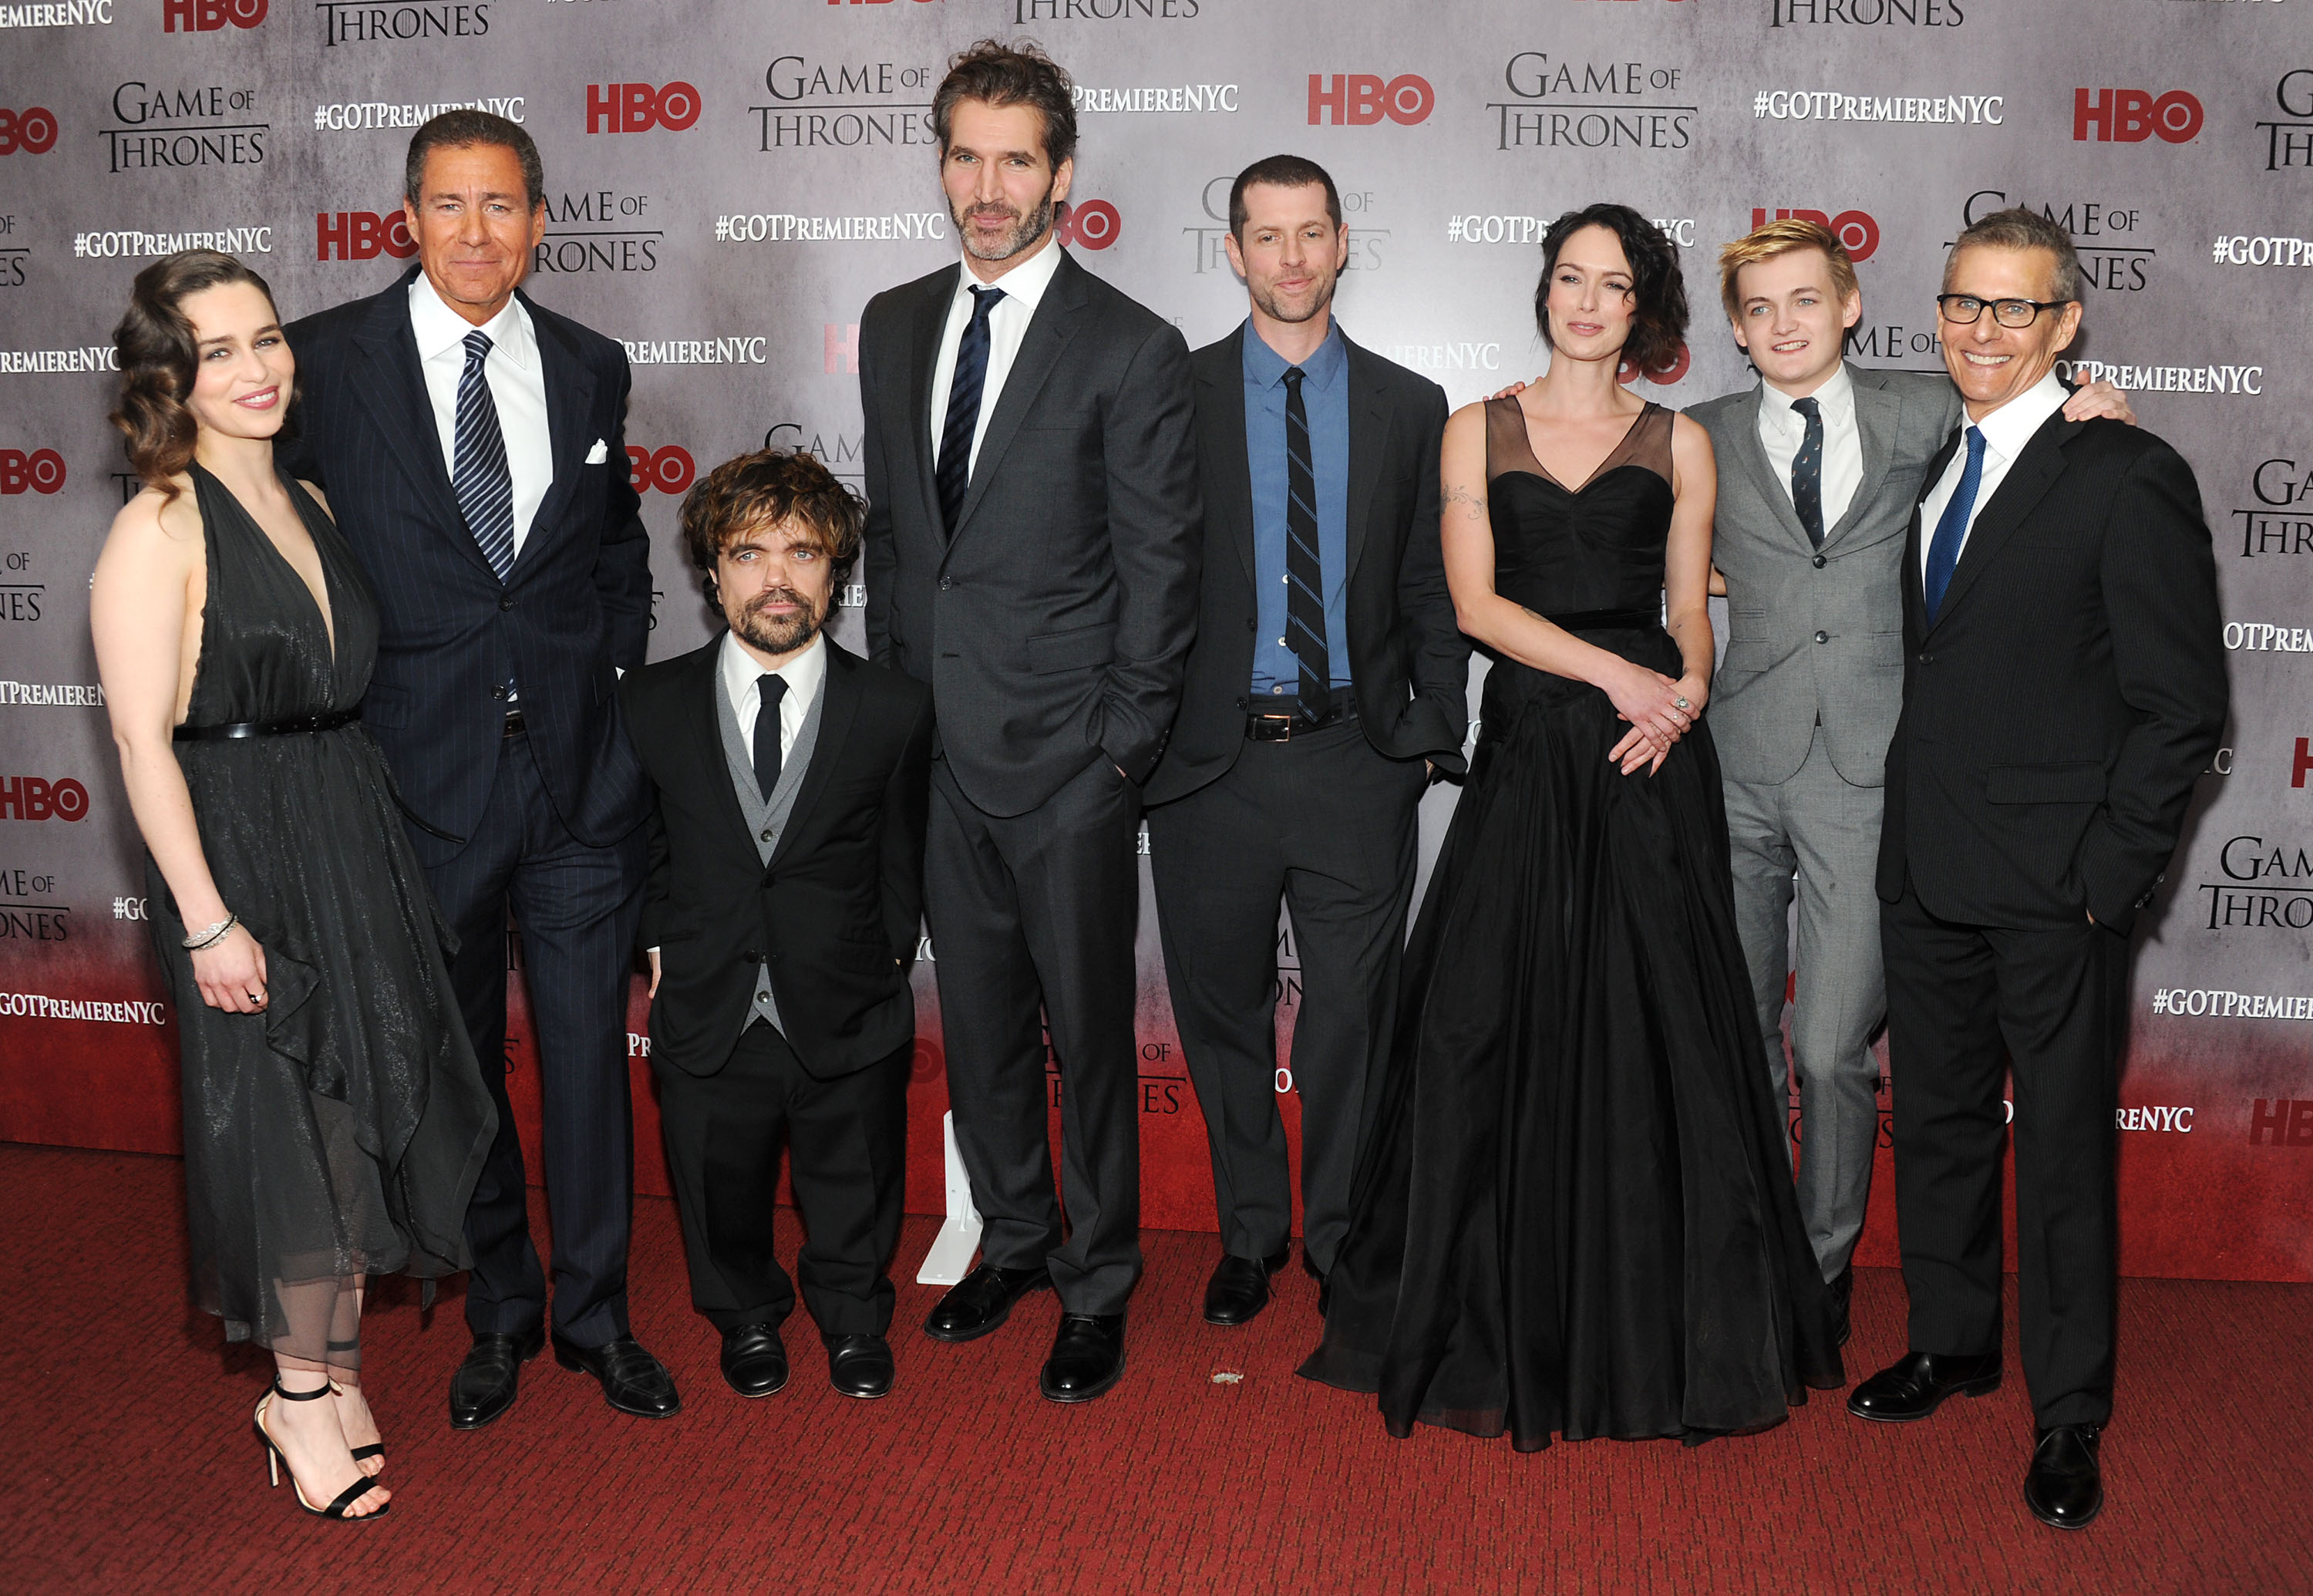 How Tall Are The 'Game of Thrones' Actors? See How Your Favorites